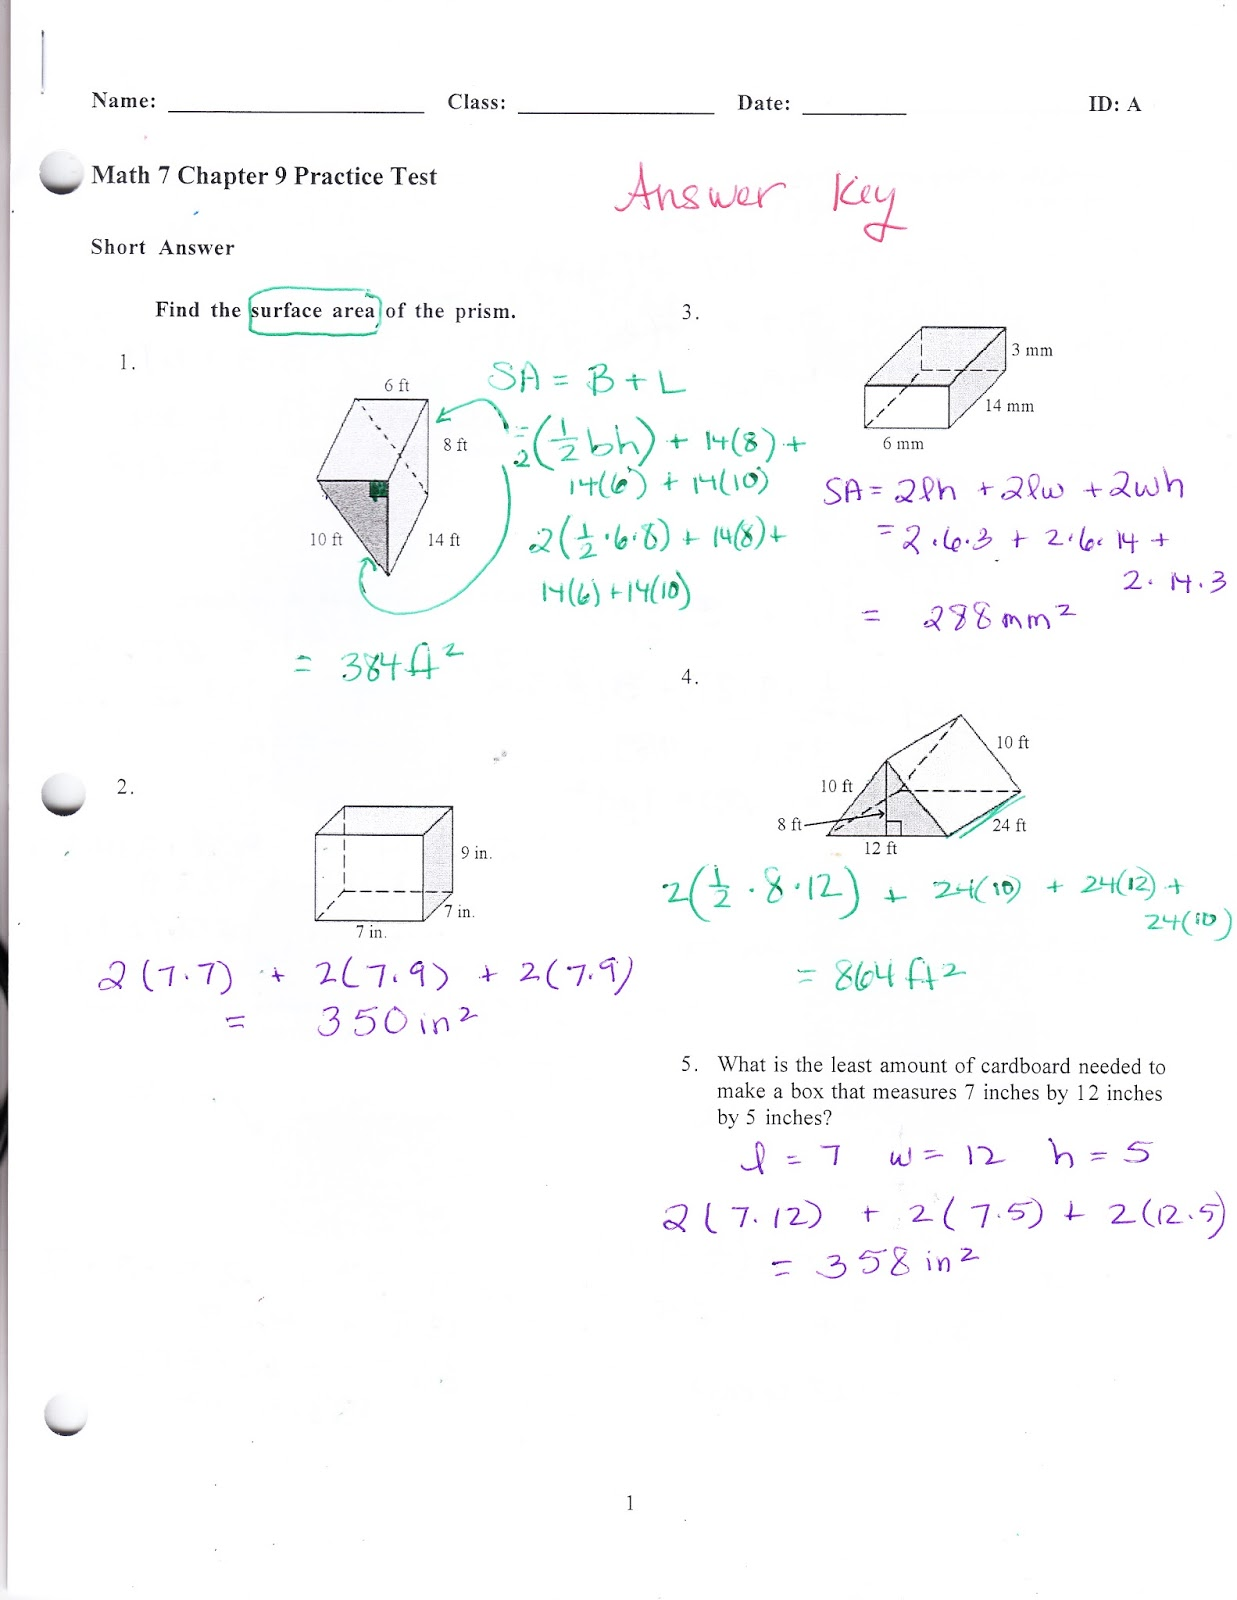 Ms Jean S Classroom Blog Math 7 Chapter 9 Practice Test